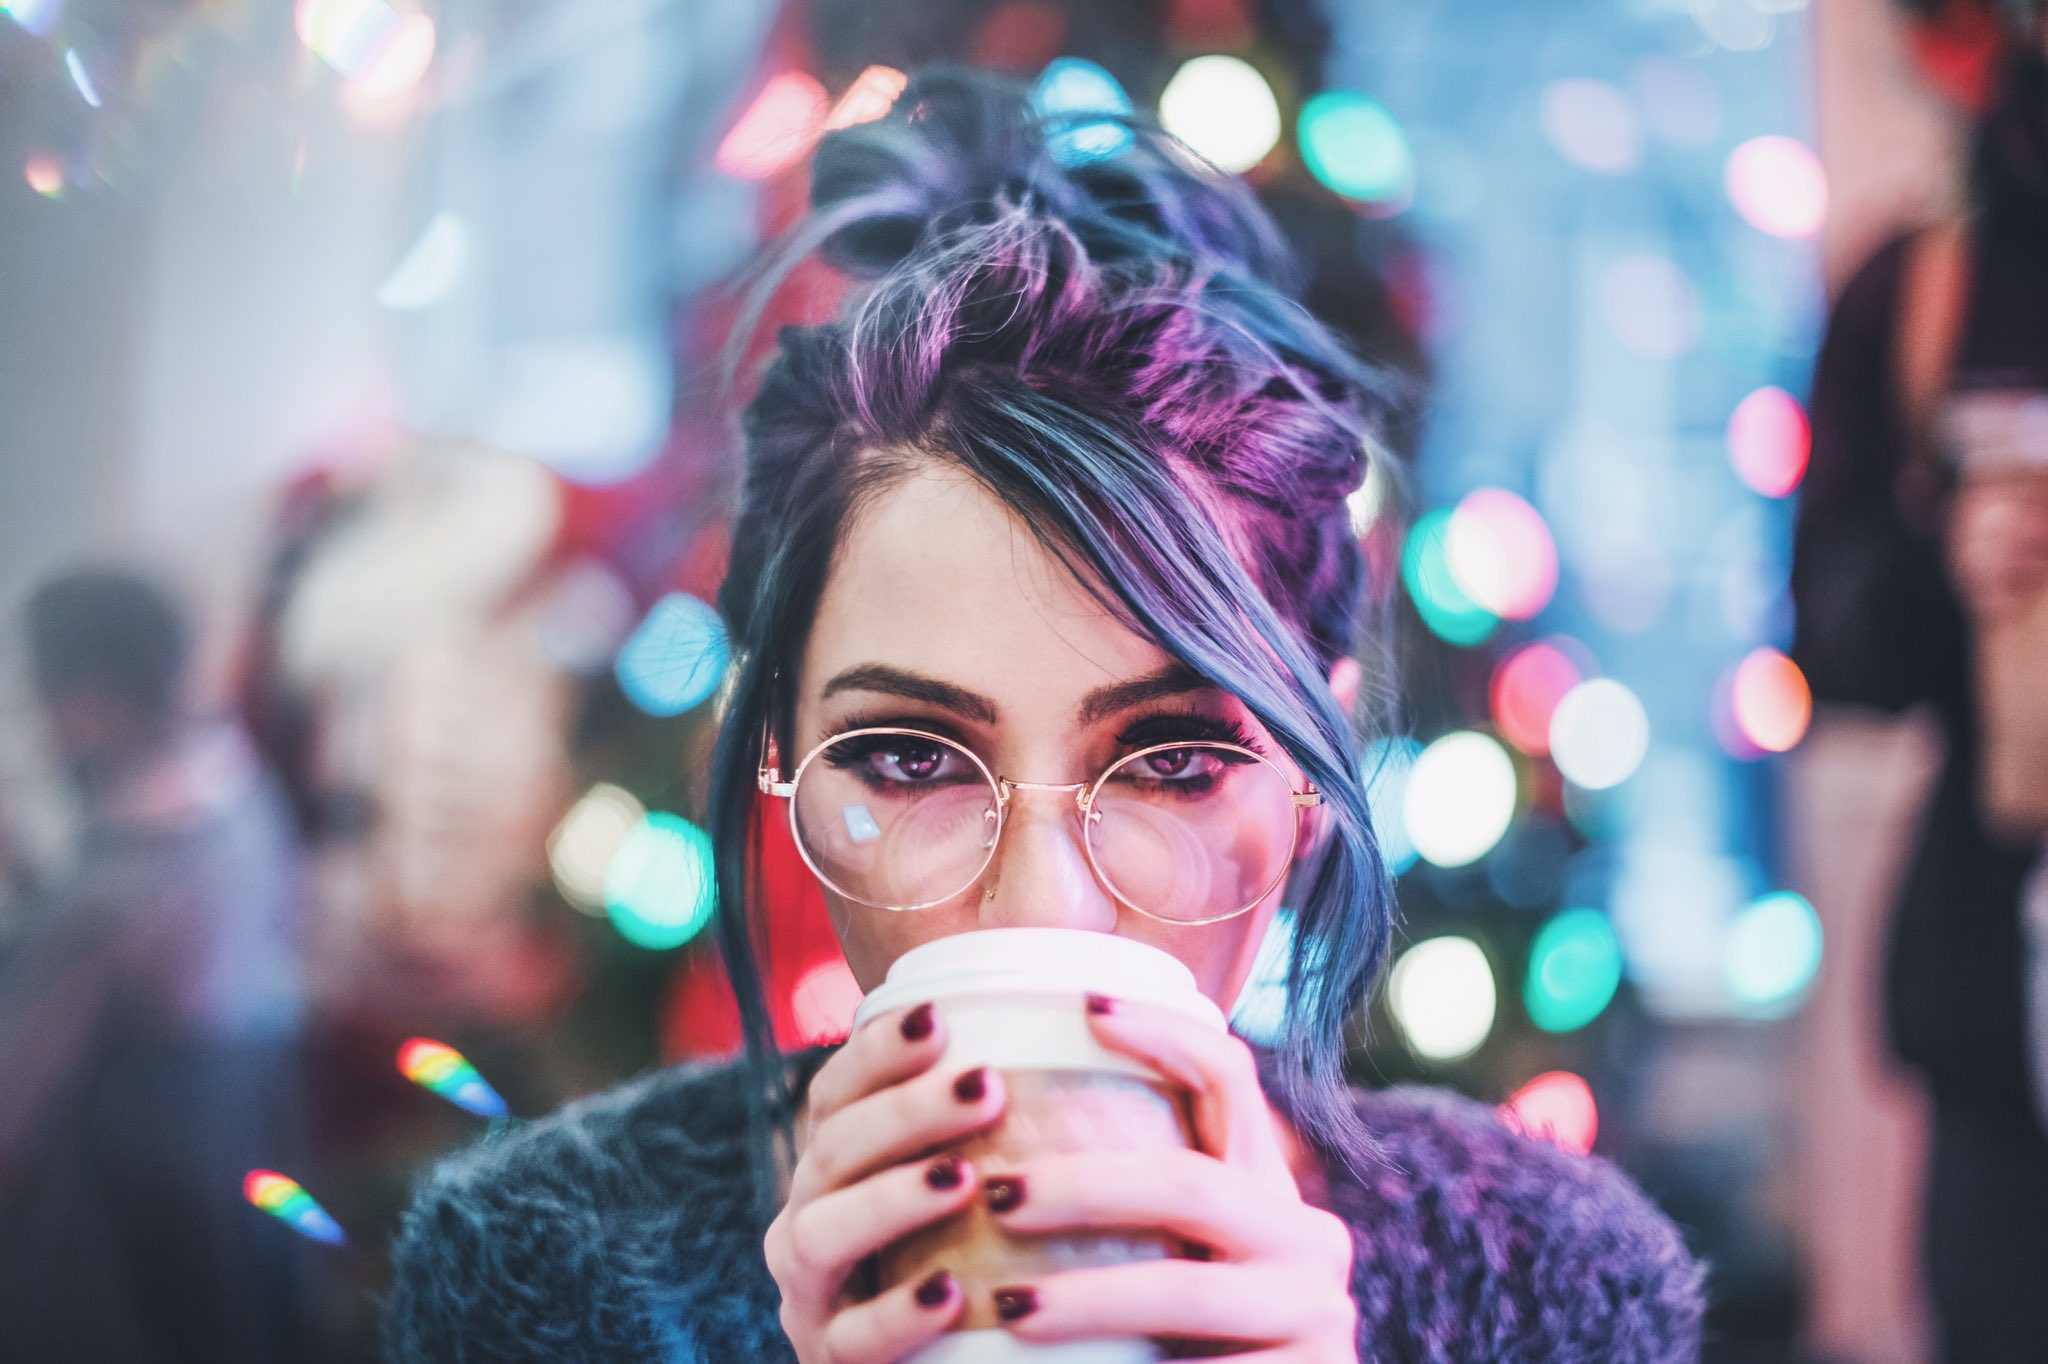 Face Of Girl Wallpaper Brandon Woelfel On Twitter Quot Good Days Start With Coffee